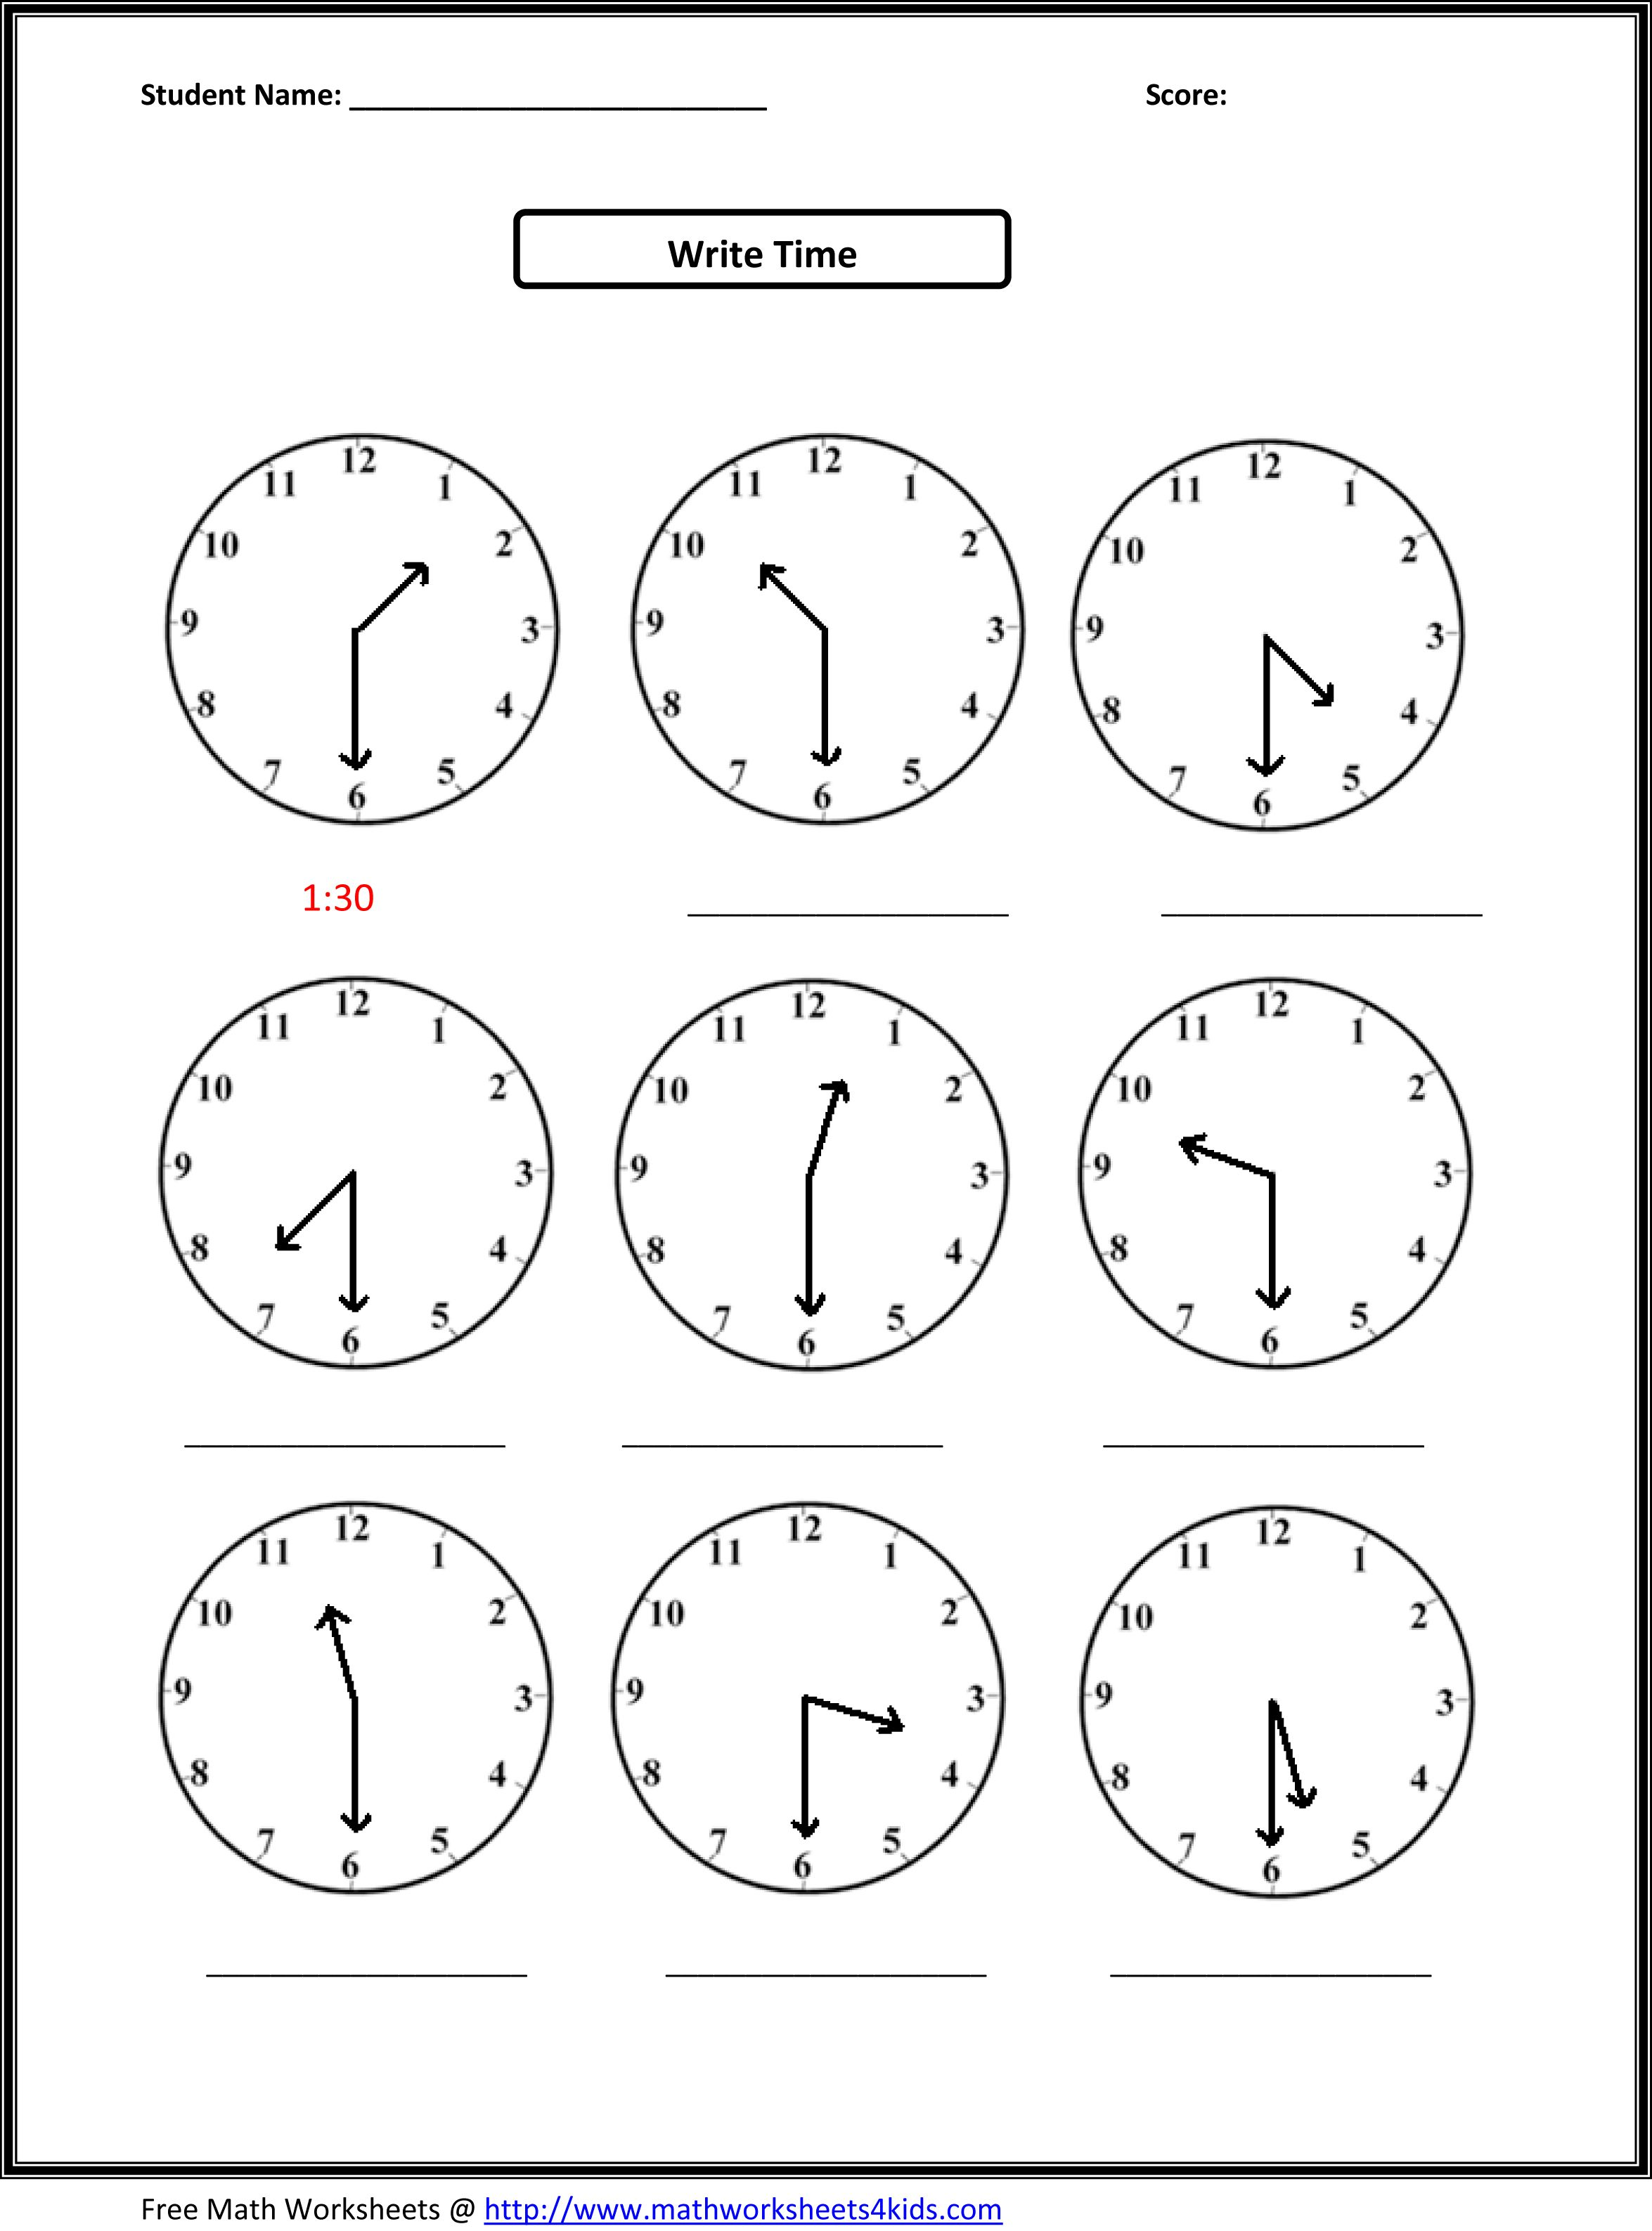 Weirdmailus  Terrific Worksheet On Time For Grade   Reocurent With Outstanding Free Printable Telling Time Worksheets Nd Grade  Reocurent With Enchanting Job Interview Worksheet Also Word Analysis Worksheets In Addition Elementary School Math Worksheets And Climate Vs Weather Worksheet As Well As Customary Conversions Worksheet Additionally Comparing Fractions Worksheet Pdf From Reocurentcom With Weirdmailus  Outstanding Worksheet On Time For Grade   Reocurent With Enchanting Free Printable Telling Time Worksheets Nd Grade  Reocurent And Terrific Job Interview Worksheet Also Word Analysis Worksheets In Addition Elementary School Math Worksheets From Reocurentcom